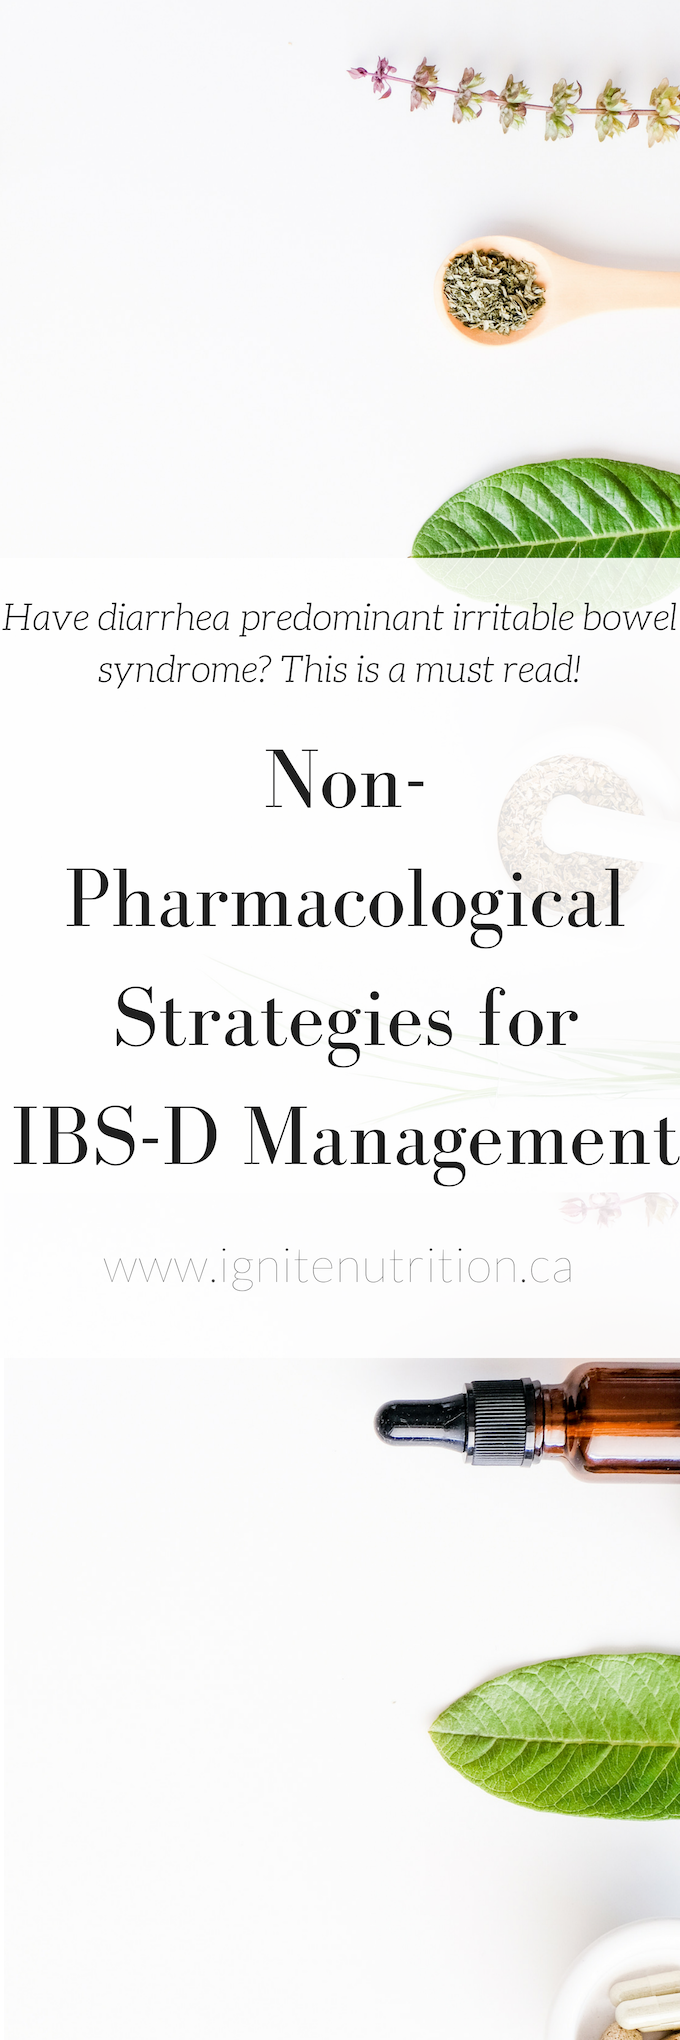 Food first, medication second is what we say at Ignite Nutrition about IBS management. However, there are times where medication is essential. We like to start with non-pharmacological options first, as their safety profile is better. From there, we determine what pharmacological agents may provide better quality of life. Working with a dietitian at Ignite nutrition Calgary specialized in IBS diets is something I recommend to all patients with irritable bowel syndrome! This post is sponsored by Fowler's digestive.